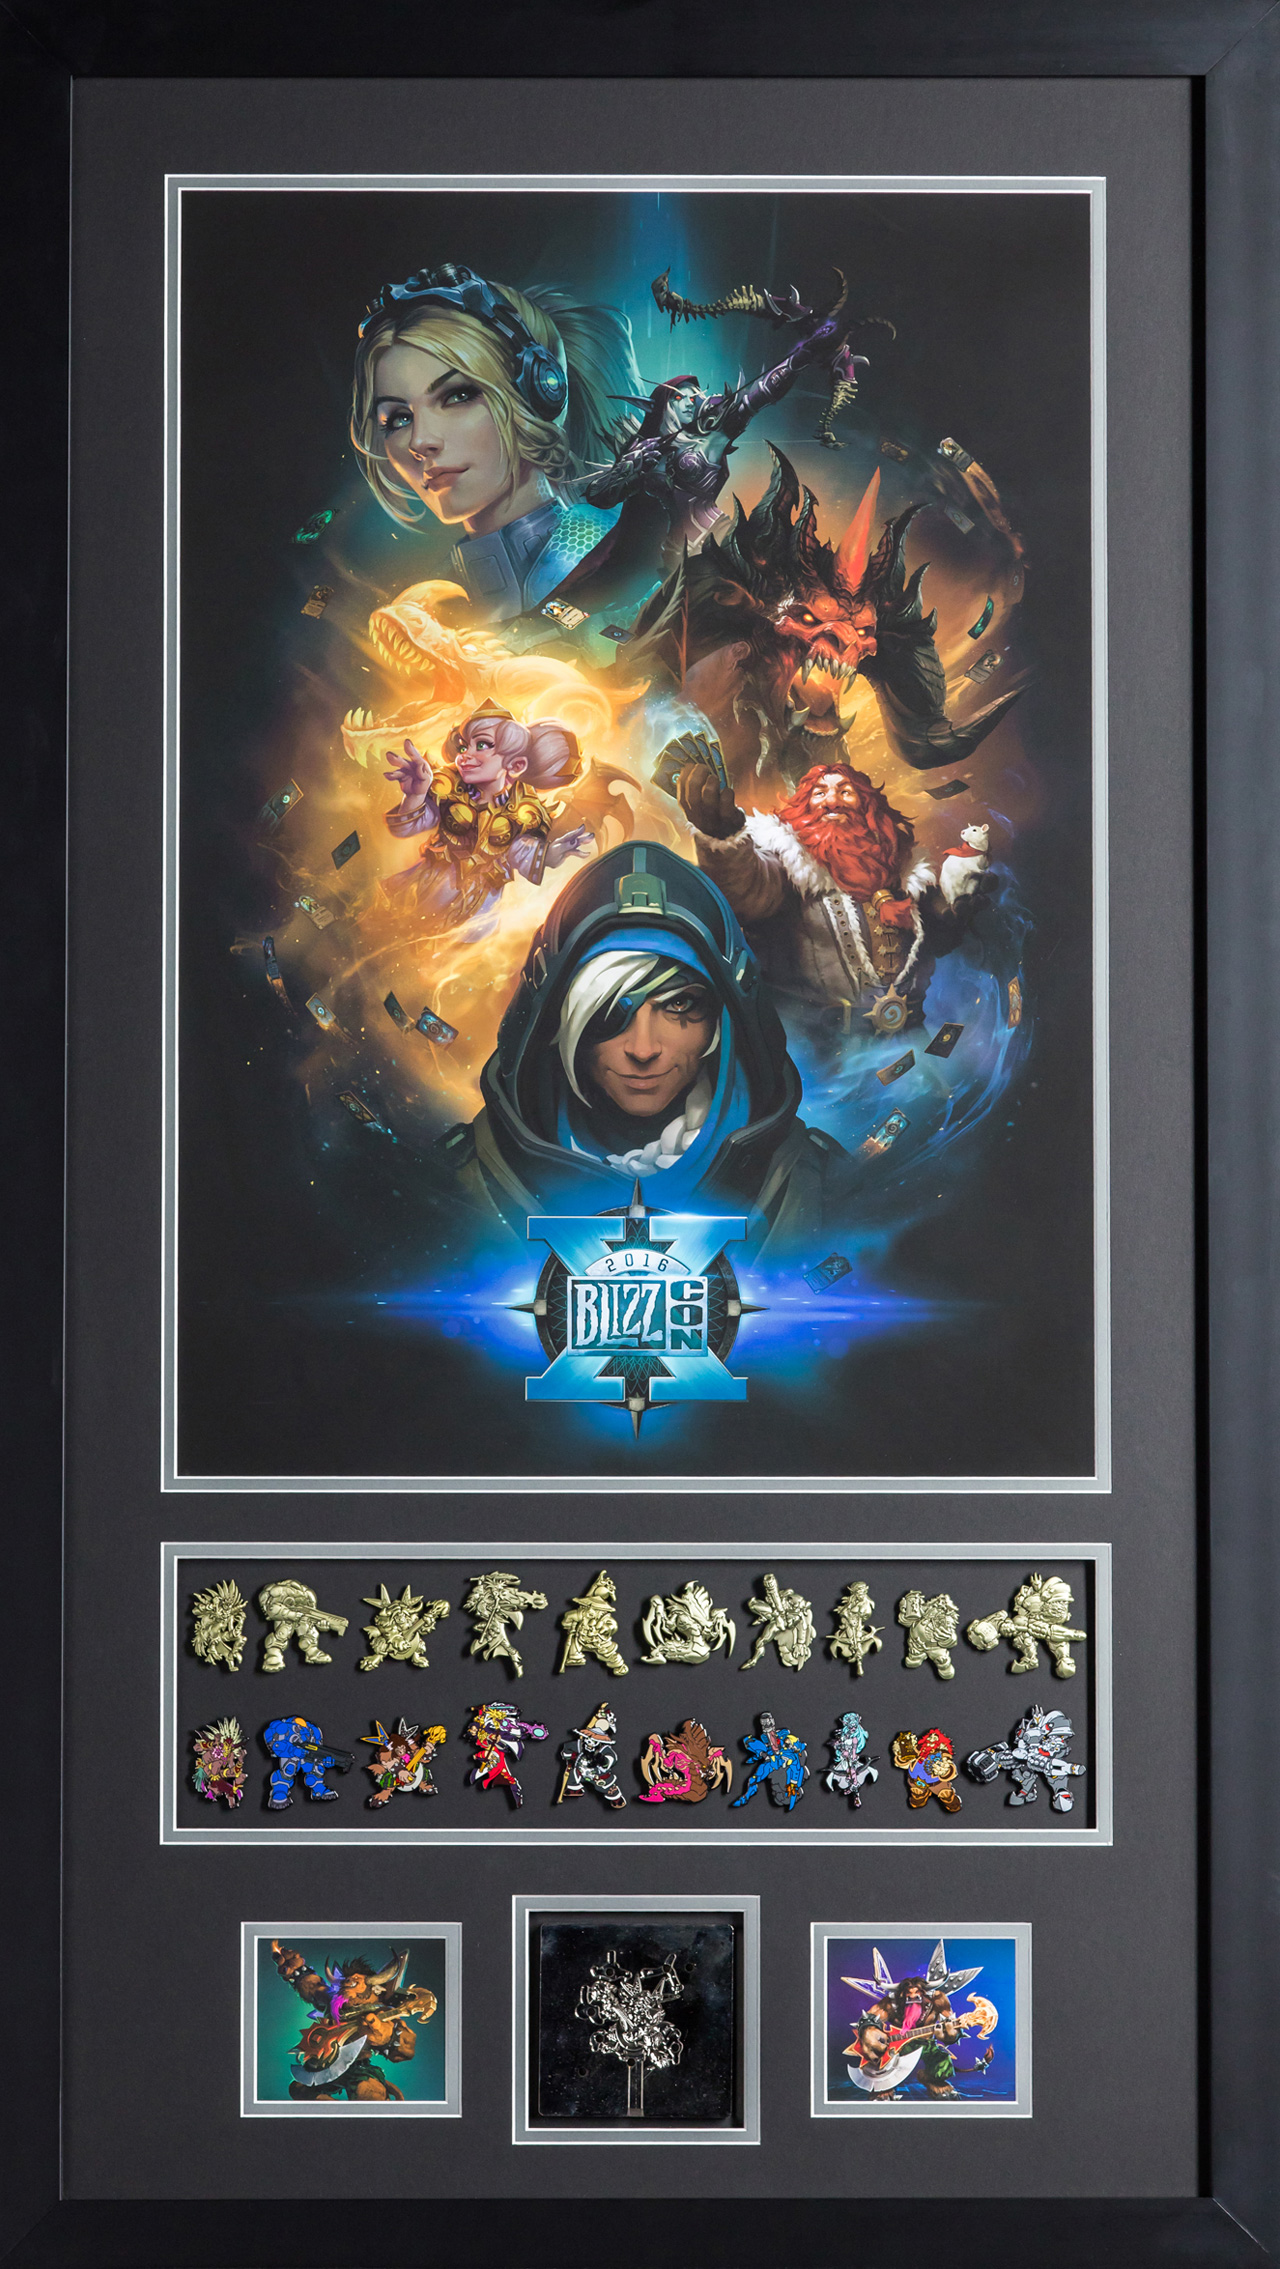 BlizzCon 10th Anniversary Poster and Pins